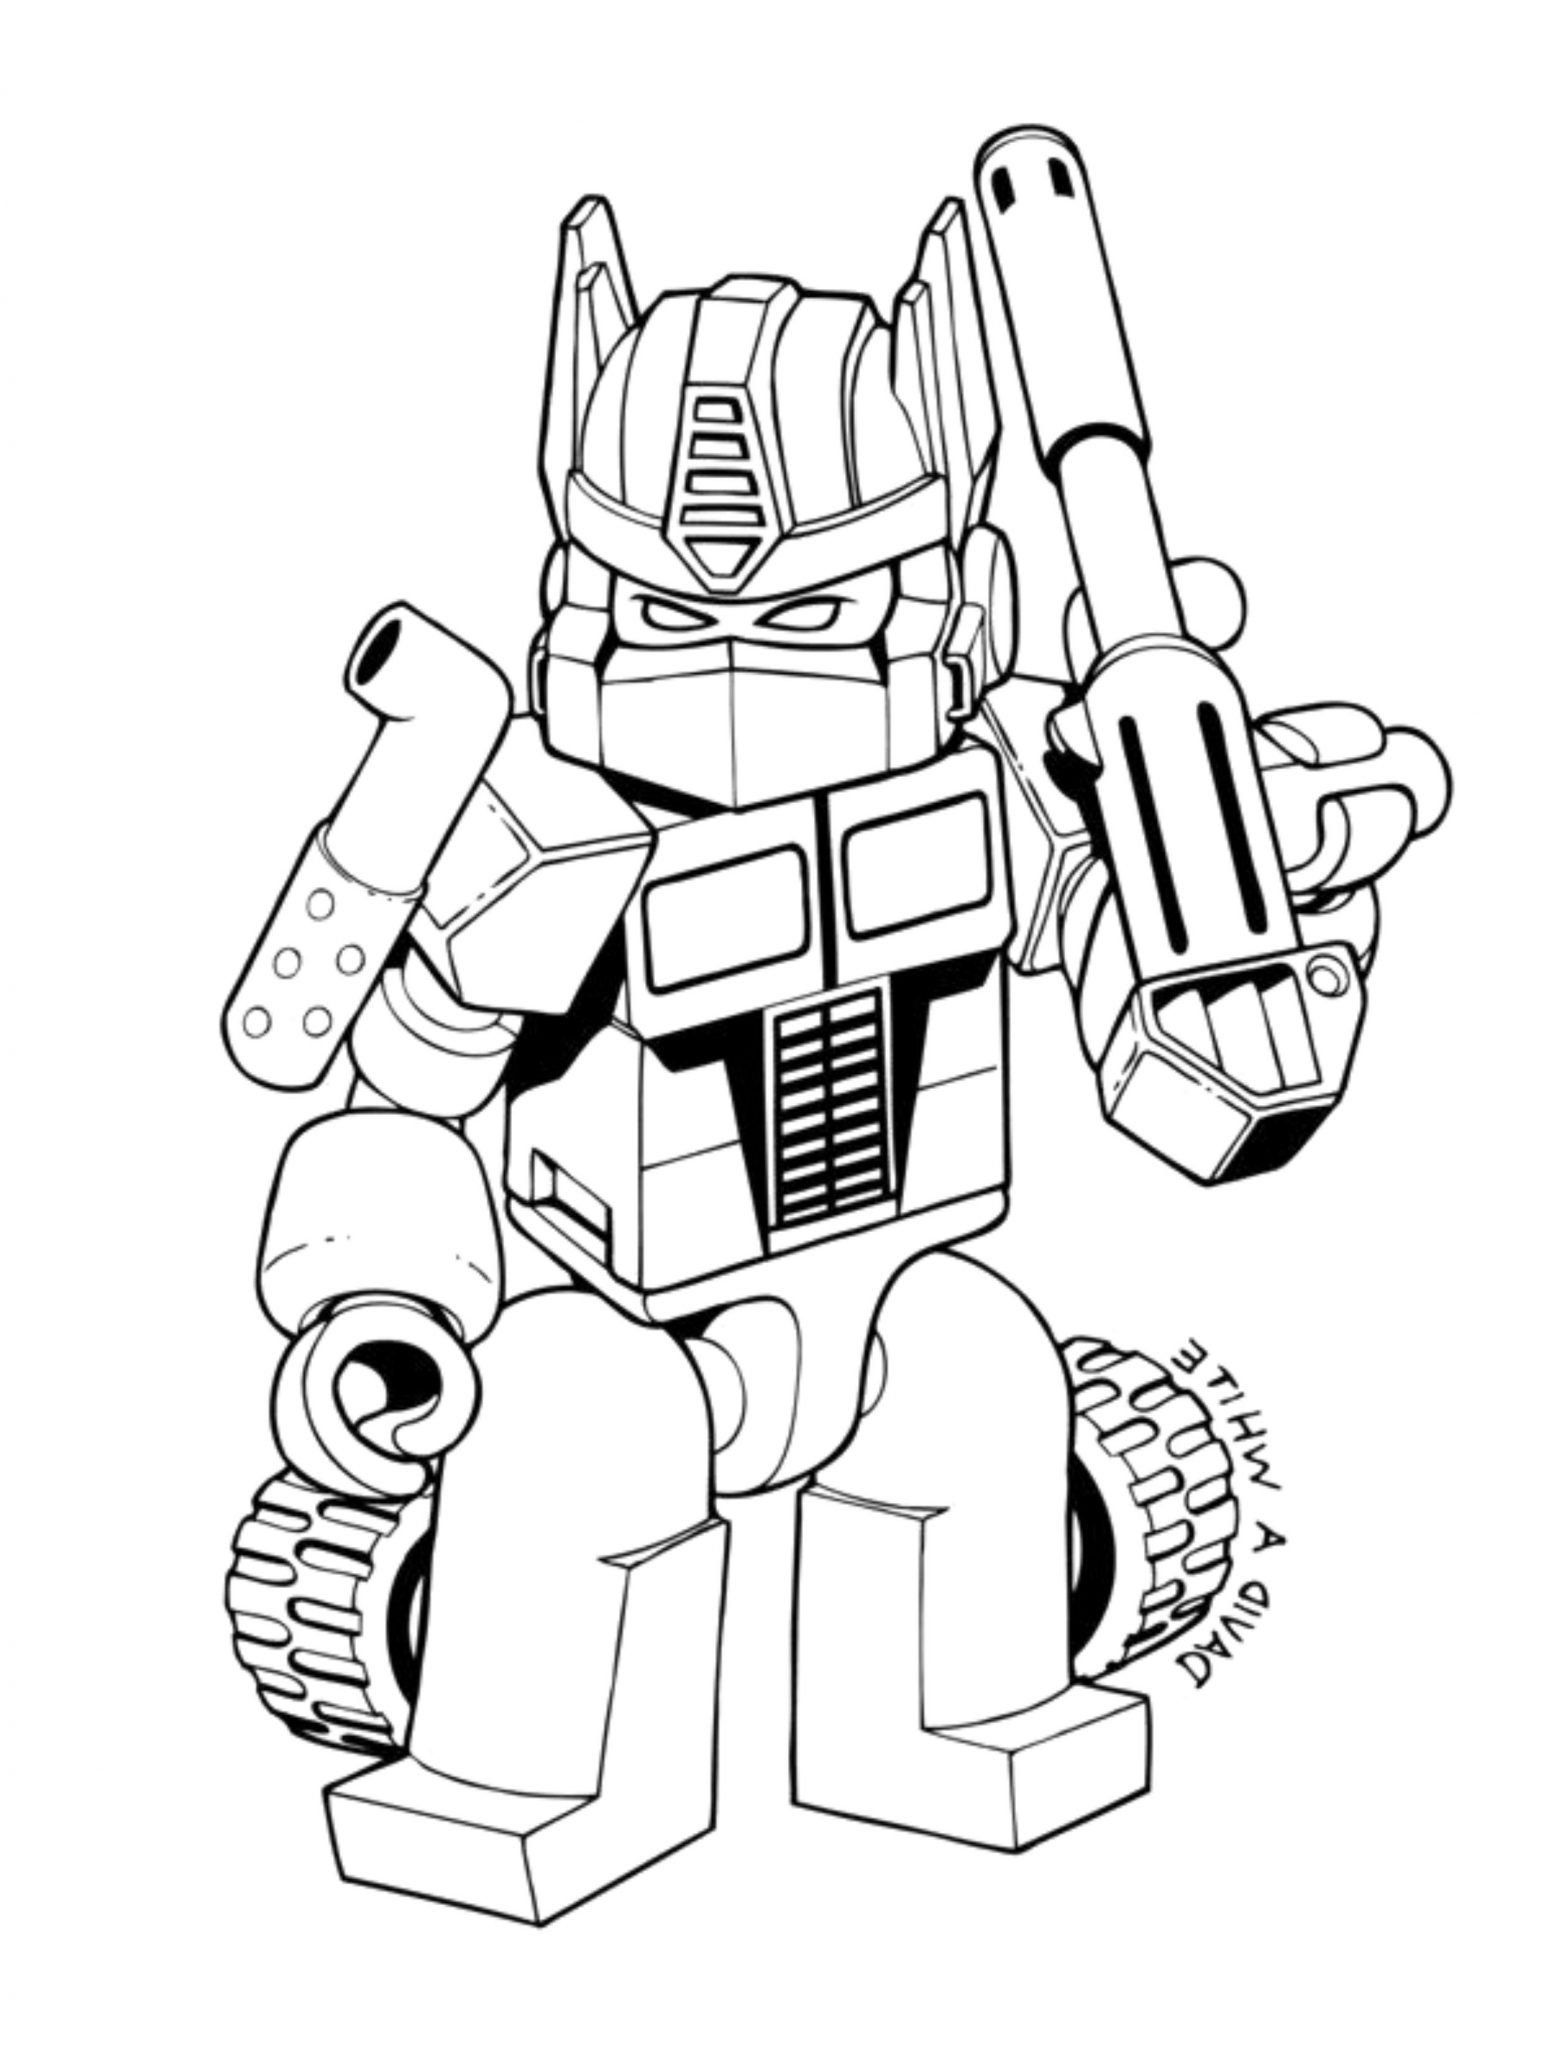 Angry Bird Coloring Pages Pdf Aˆs Angry Birds Transformers Printable Coloring Pages In 2020 Lego Coloring Pages Transformers Coloring Pages Lego Coloring